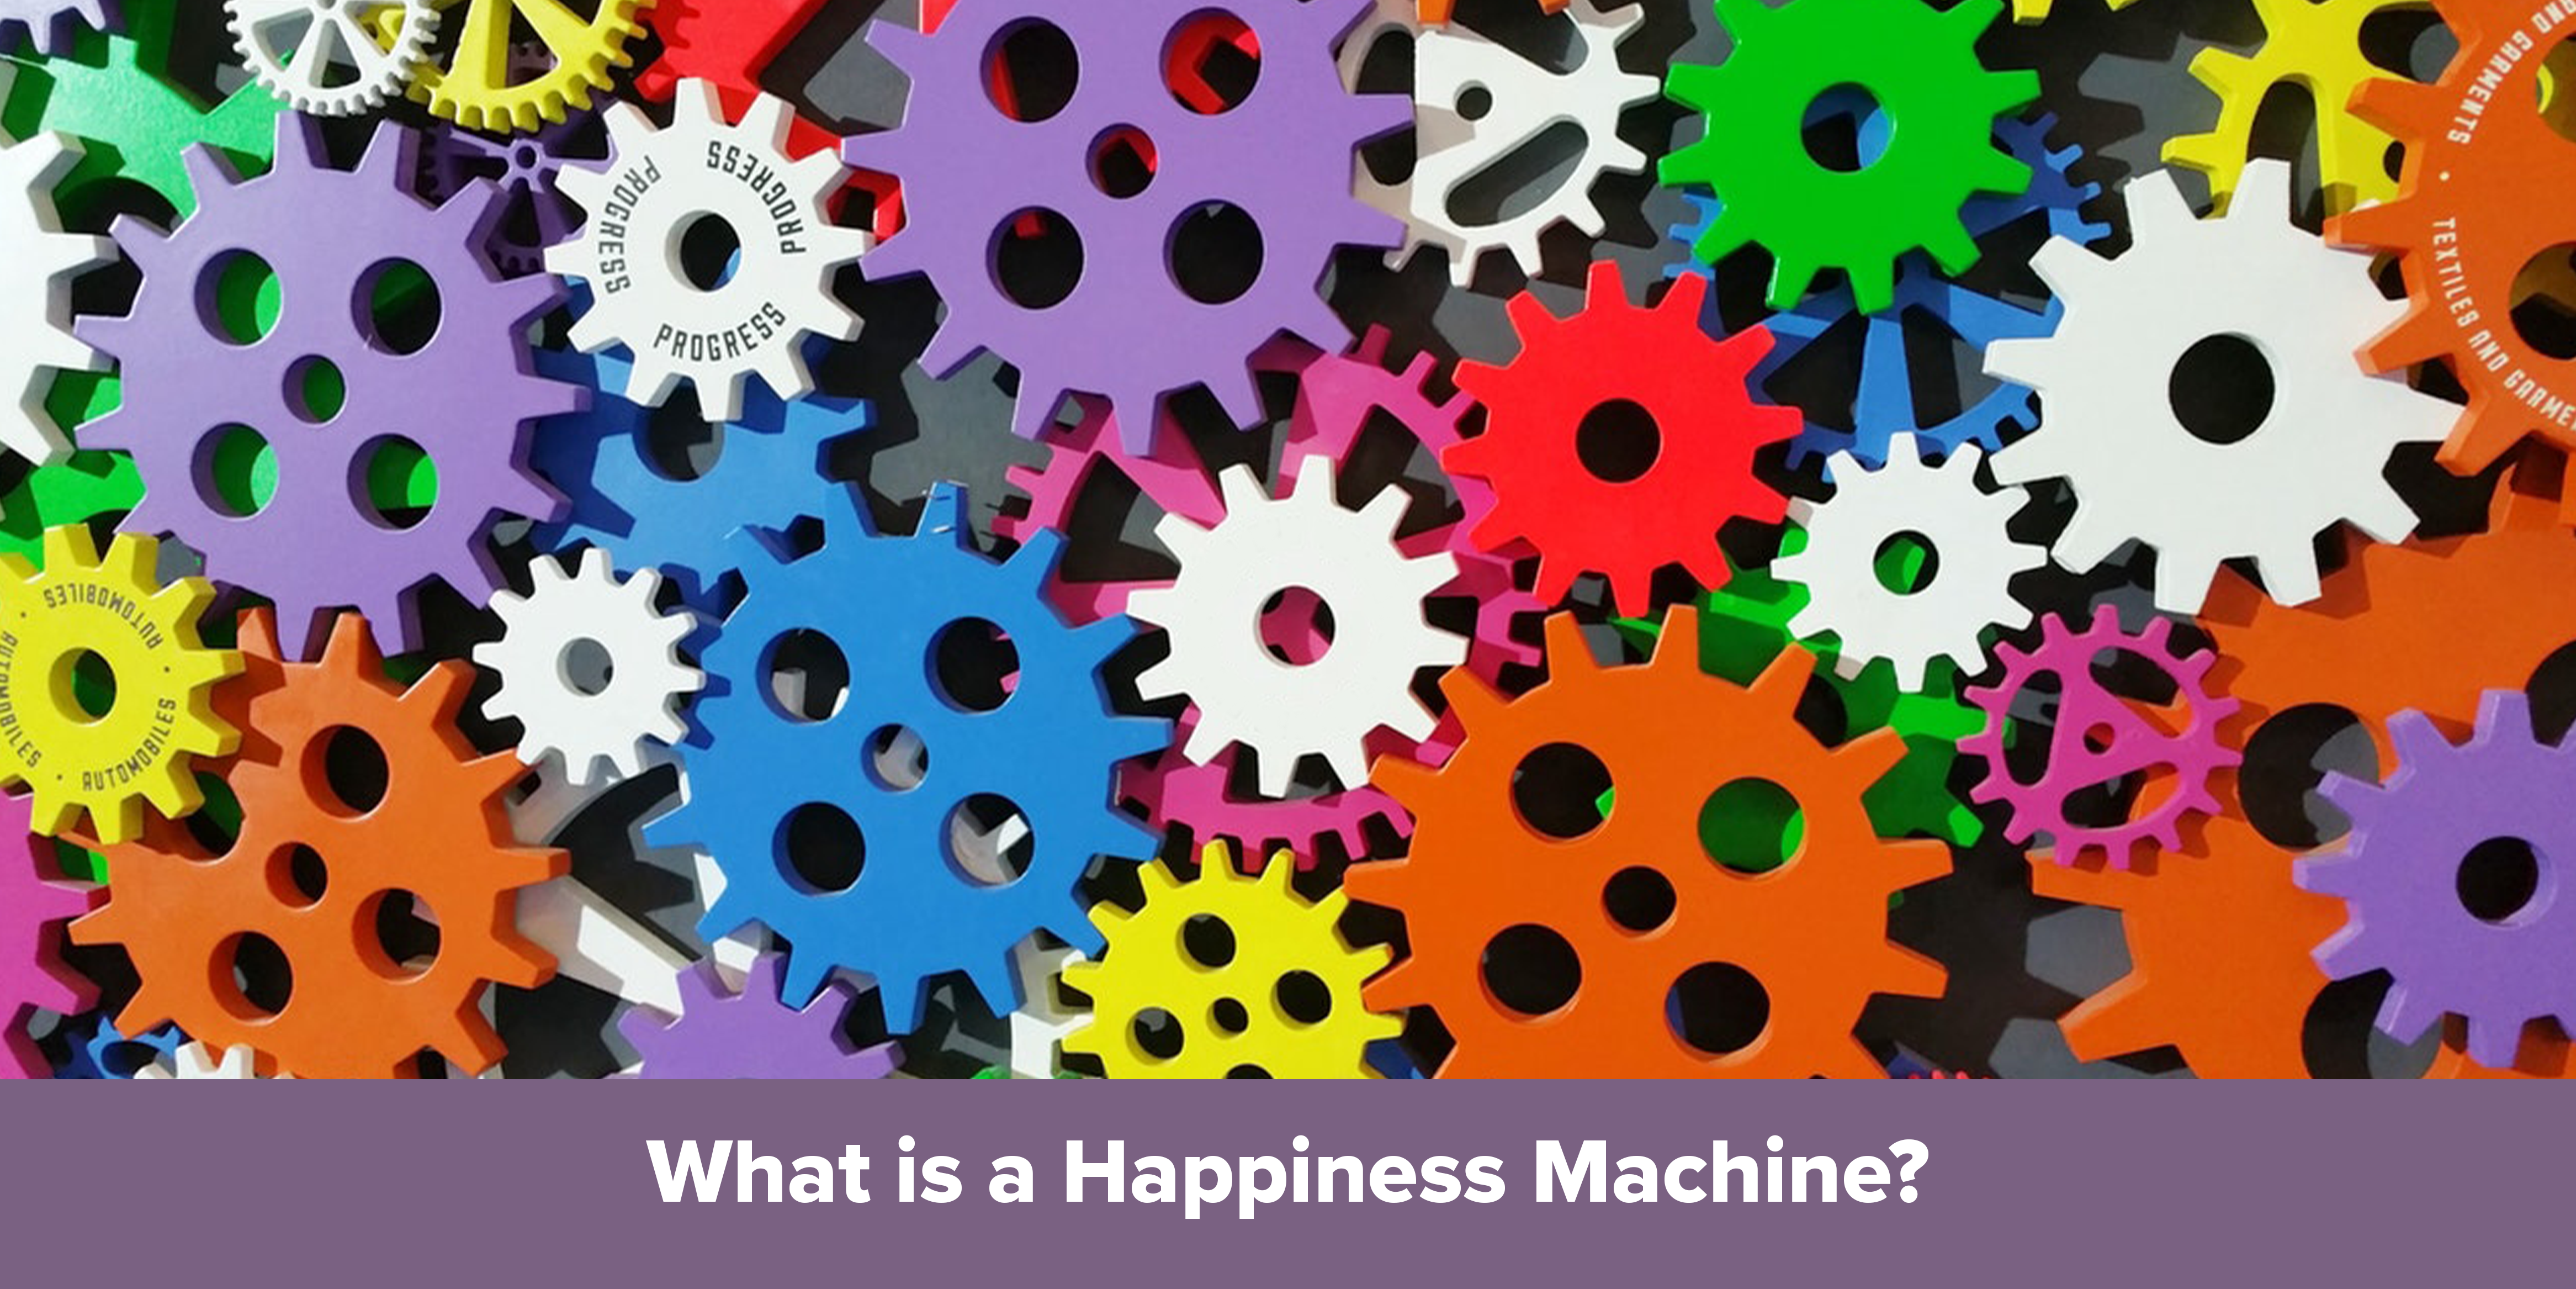 What is a Happiness Machine